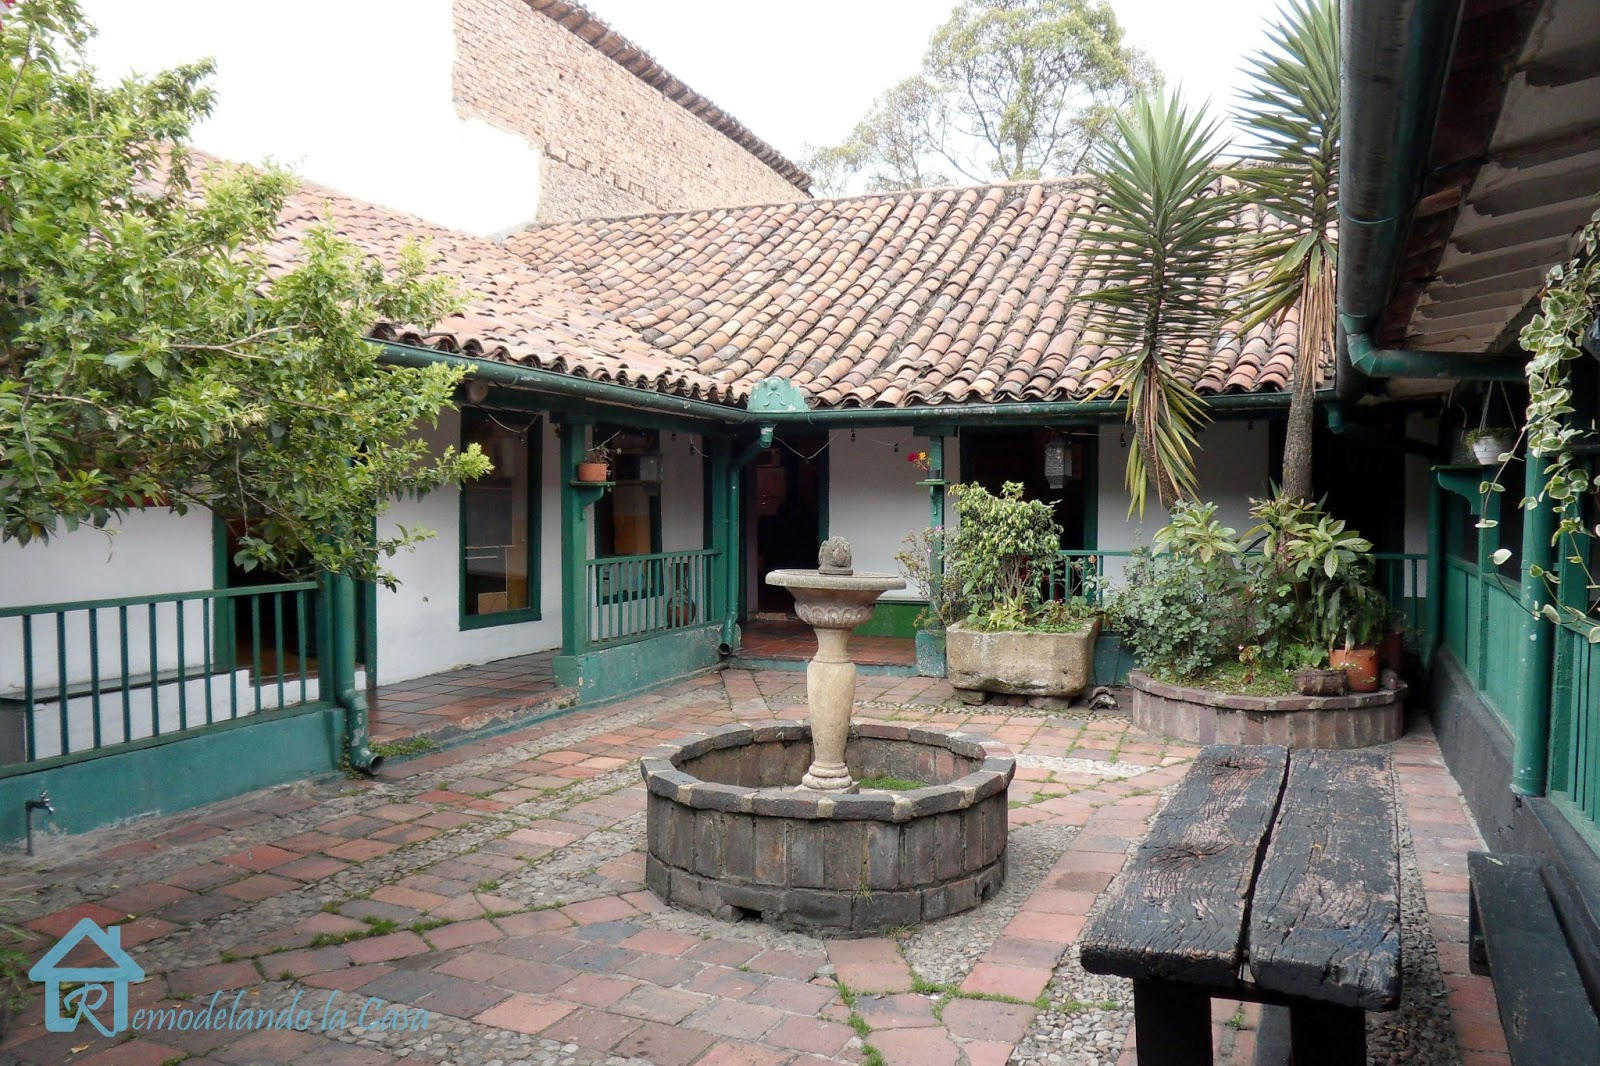 Spanish colonial crush remodelando la casa for Home de